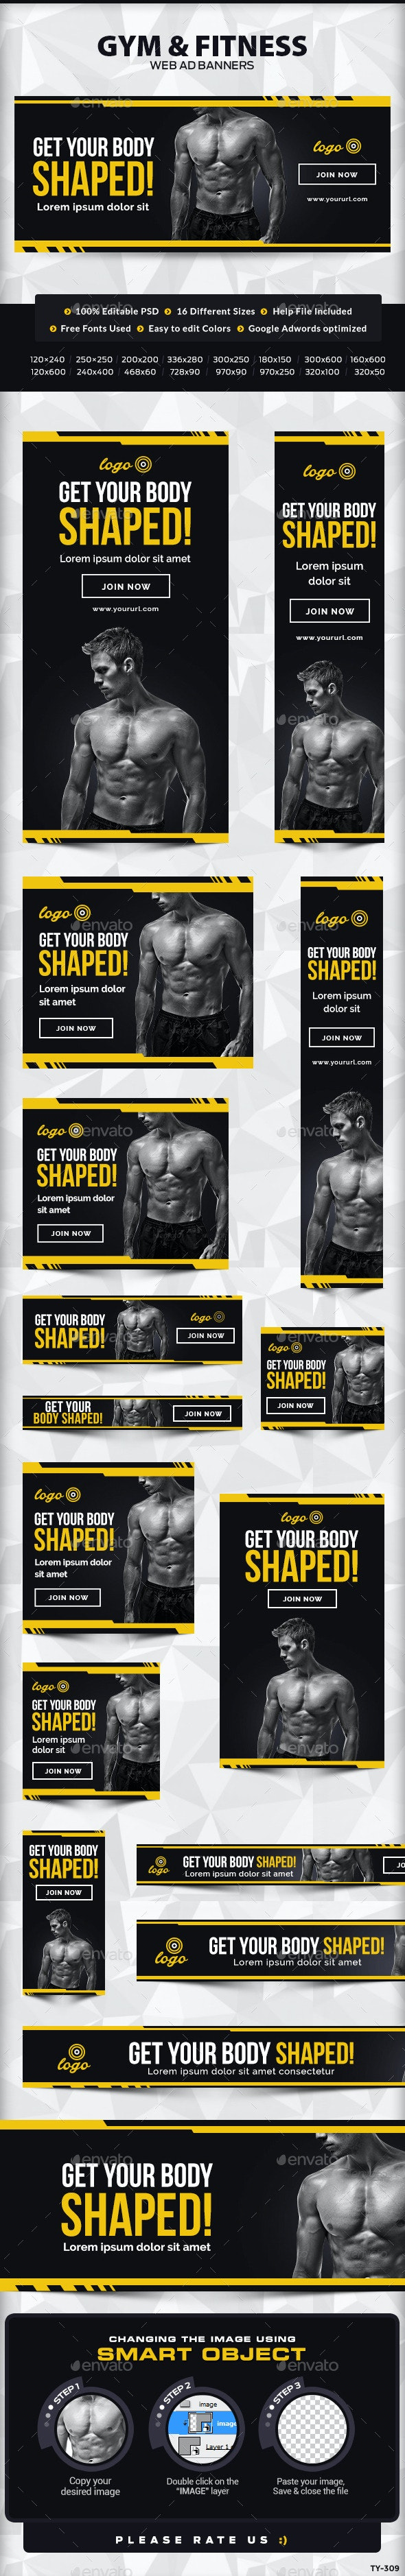 Gym and Fitness Banners - Banners & Ads Web Elements